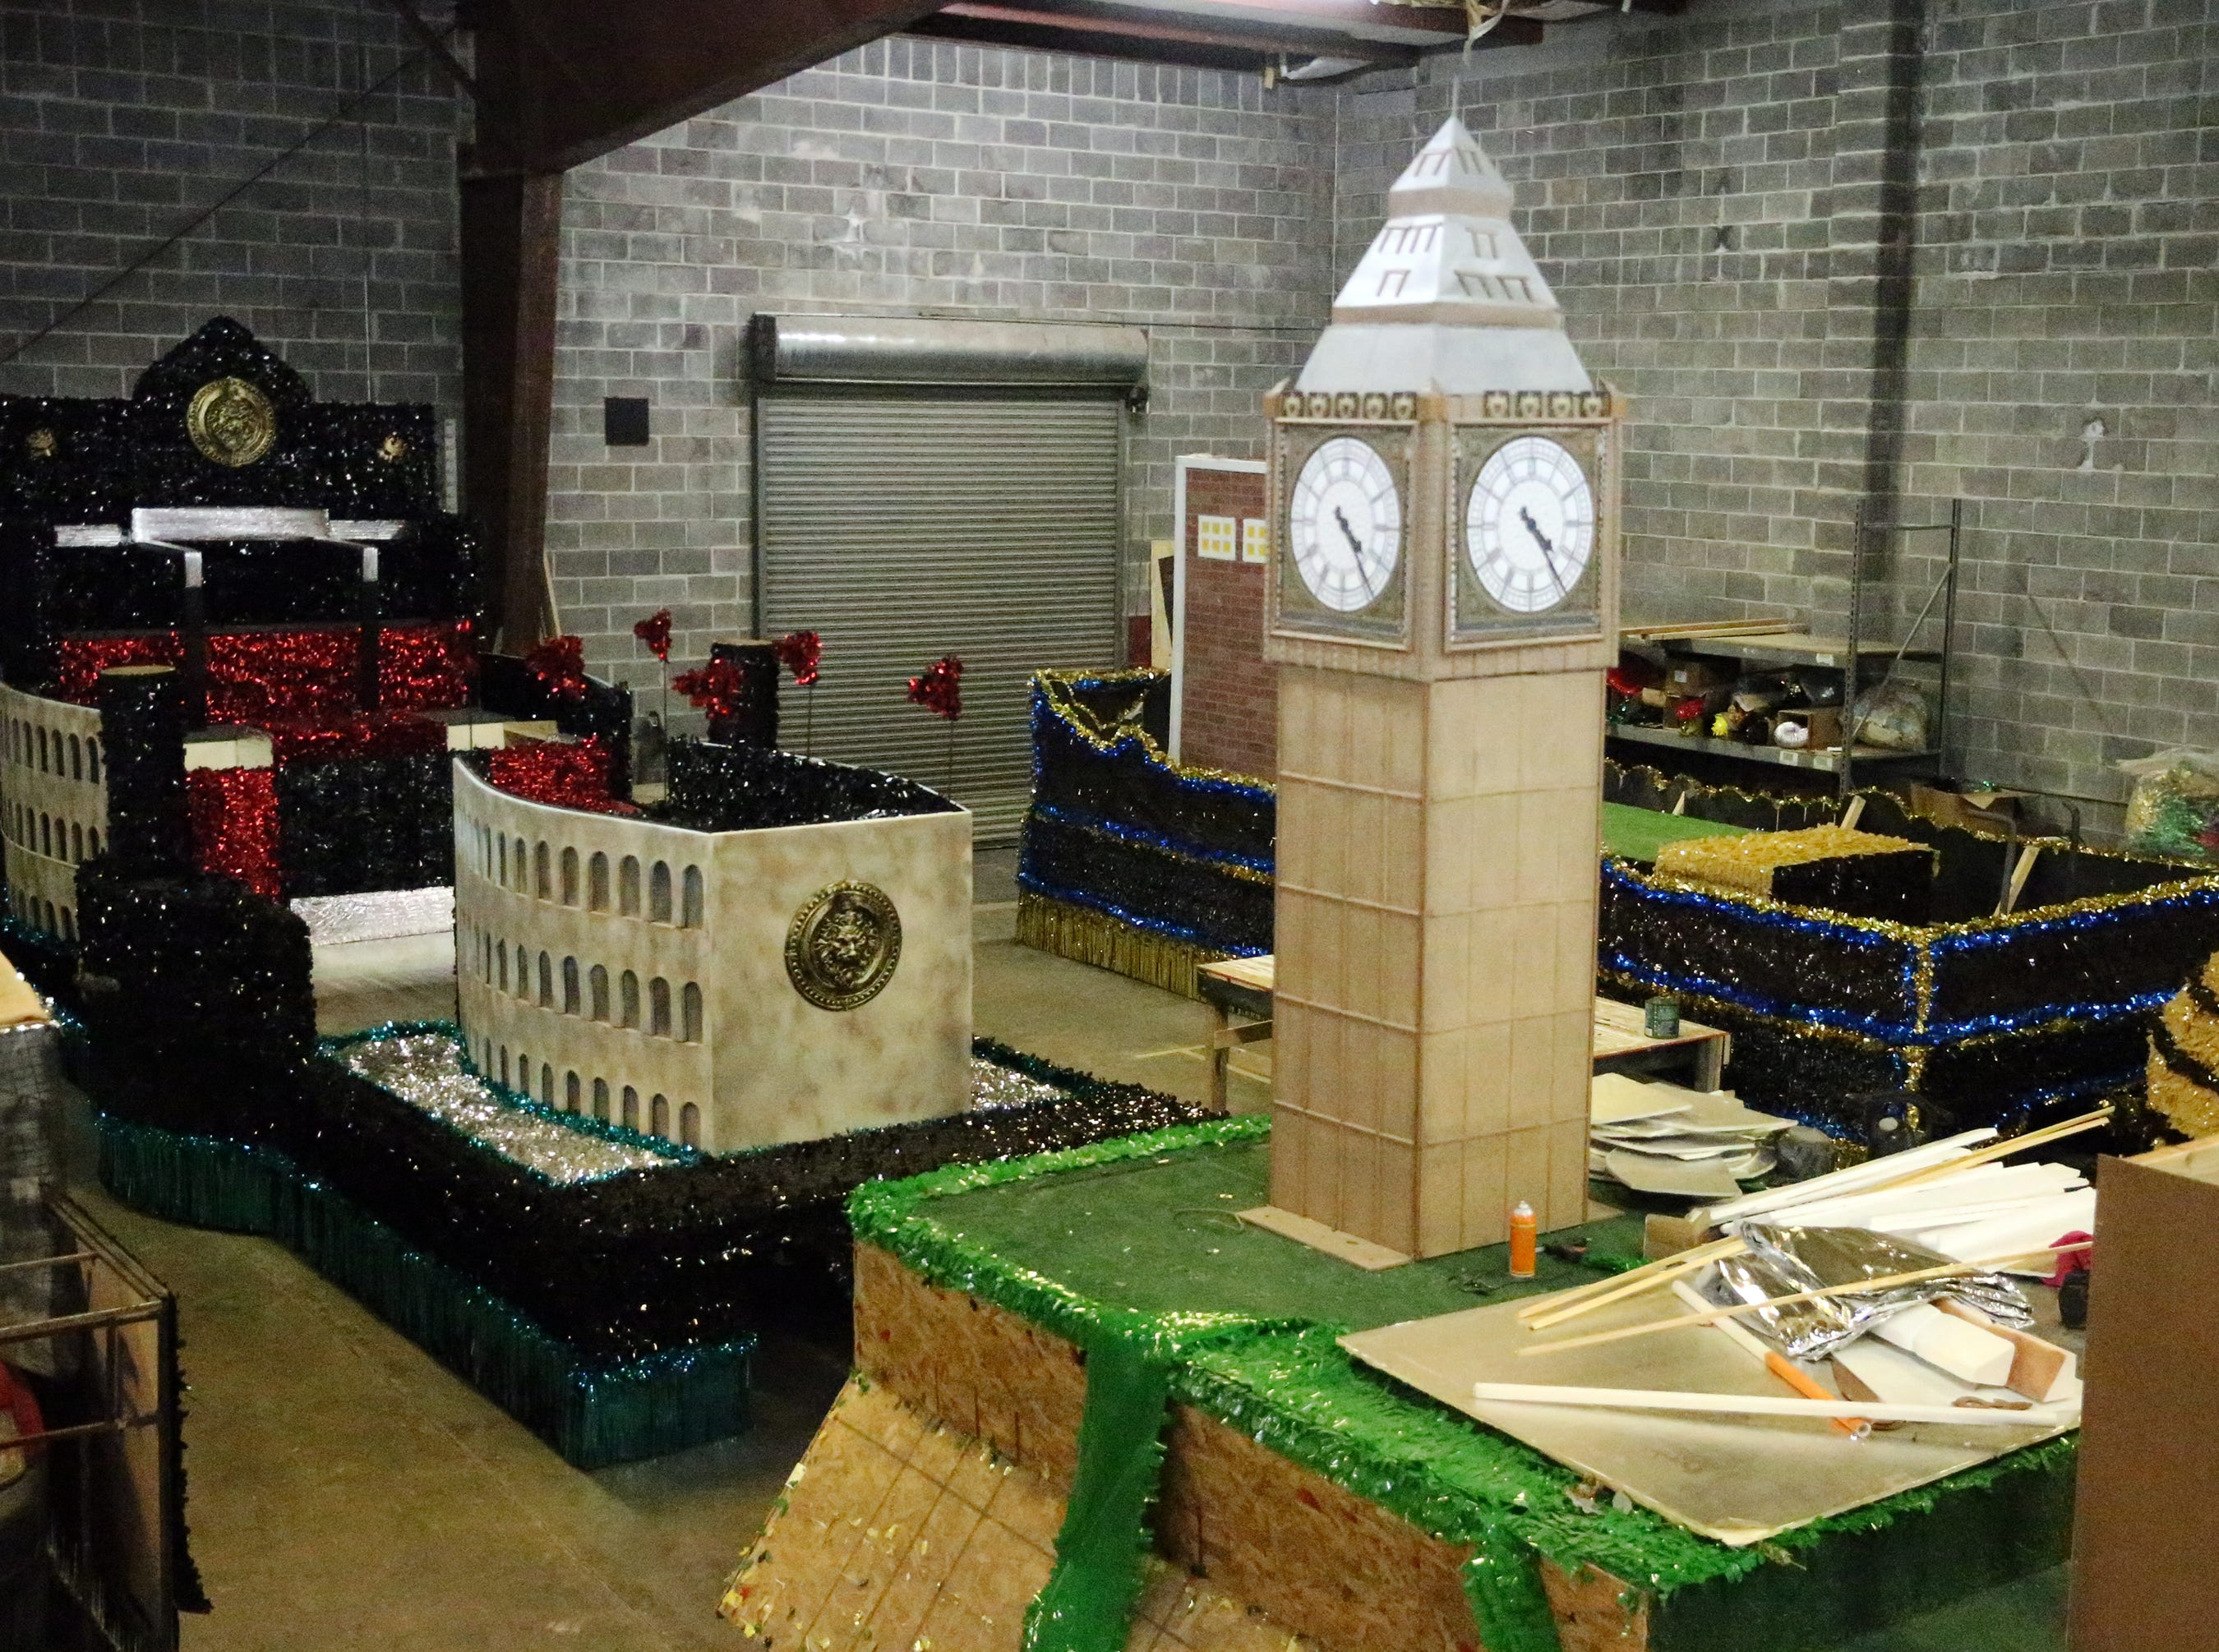 Floats with various themes are being constructed for the 82nd Annual First Light Federal Credit Union Sun Bowl Parade on Thanksgiving Day.